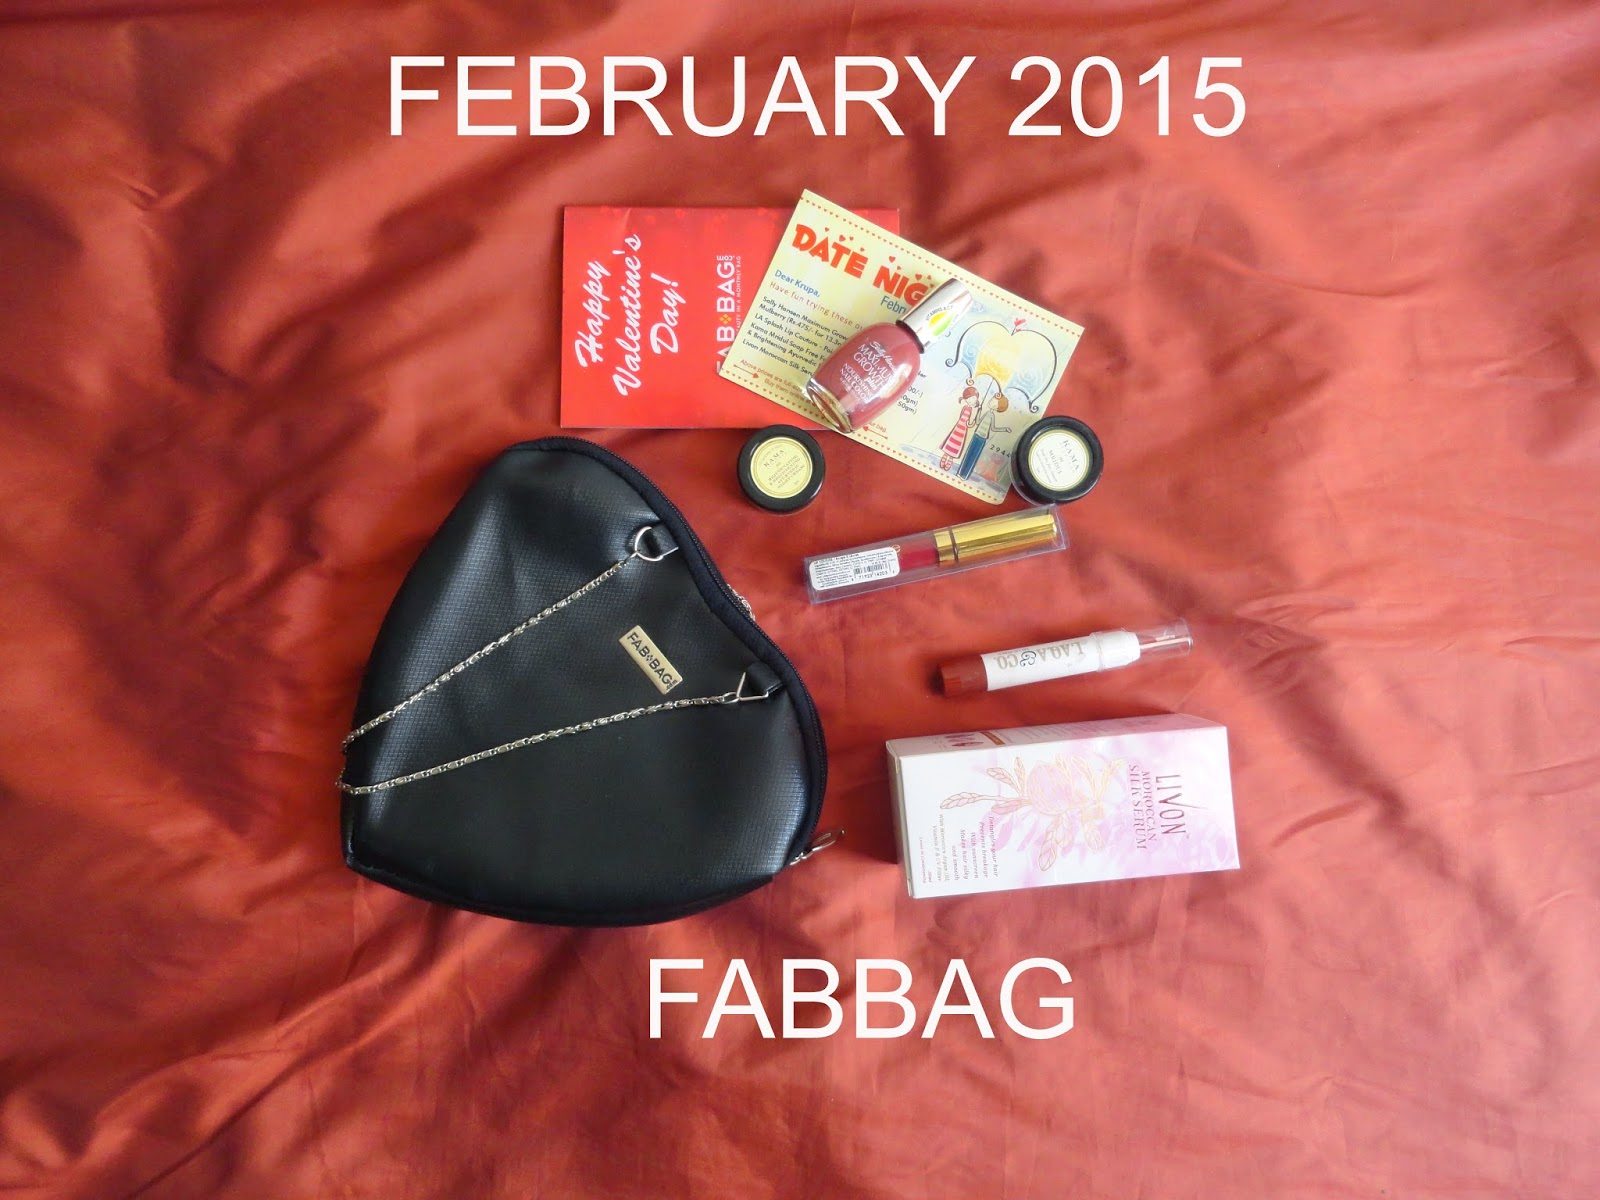 The bag filled with Love from Fabbag- February 2015 image